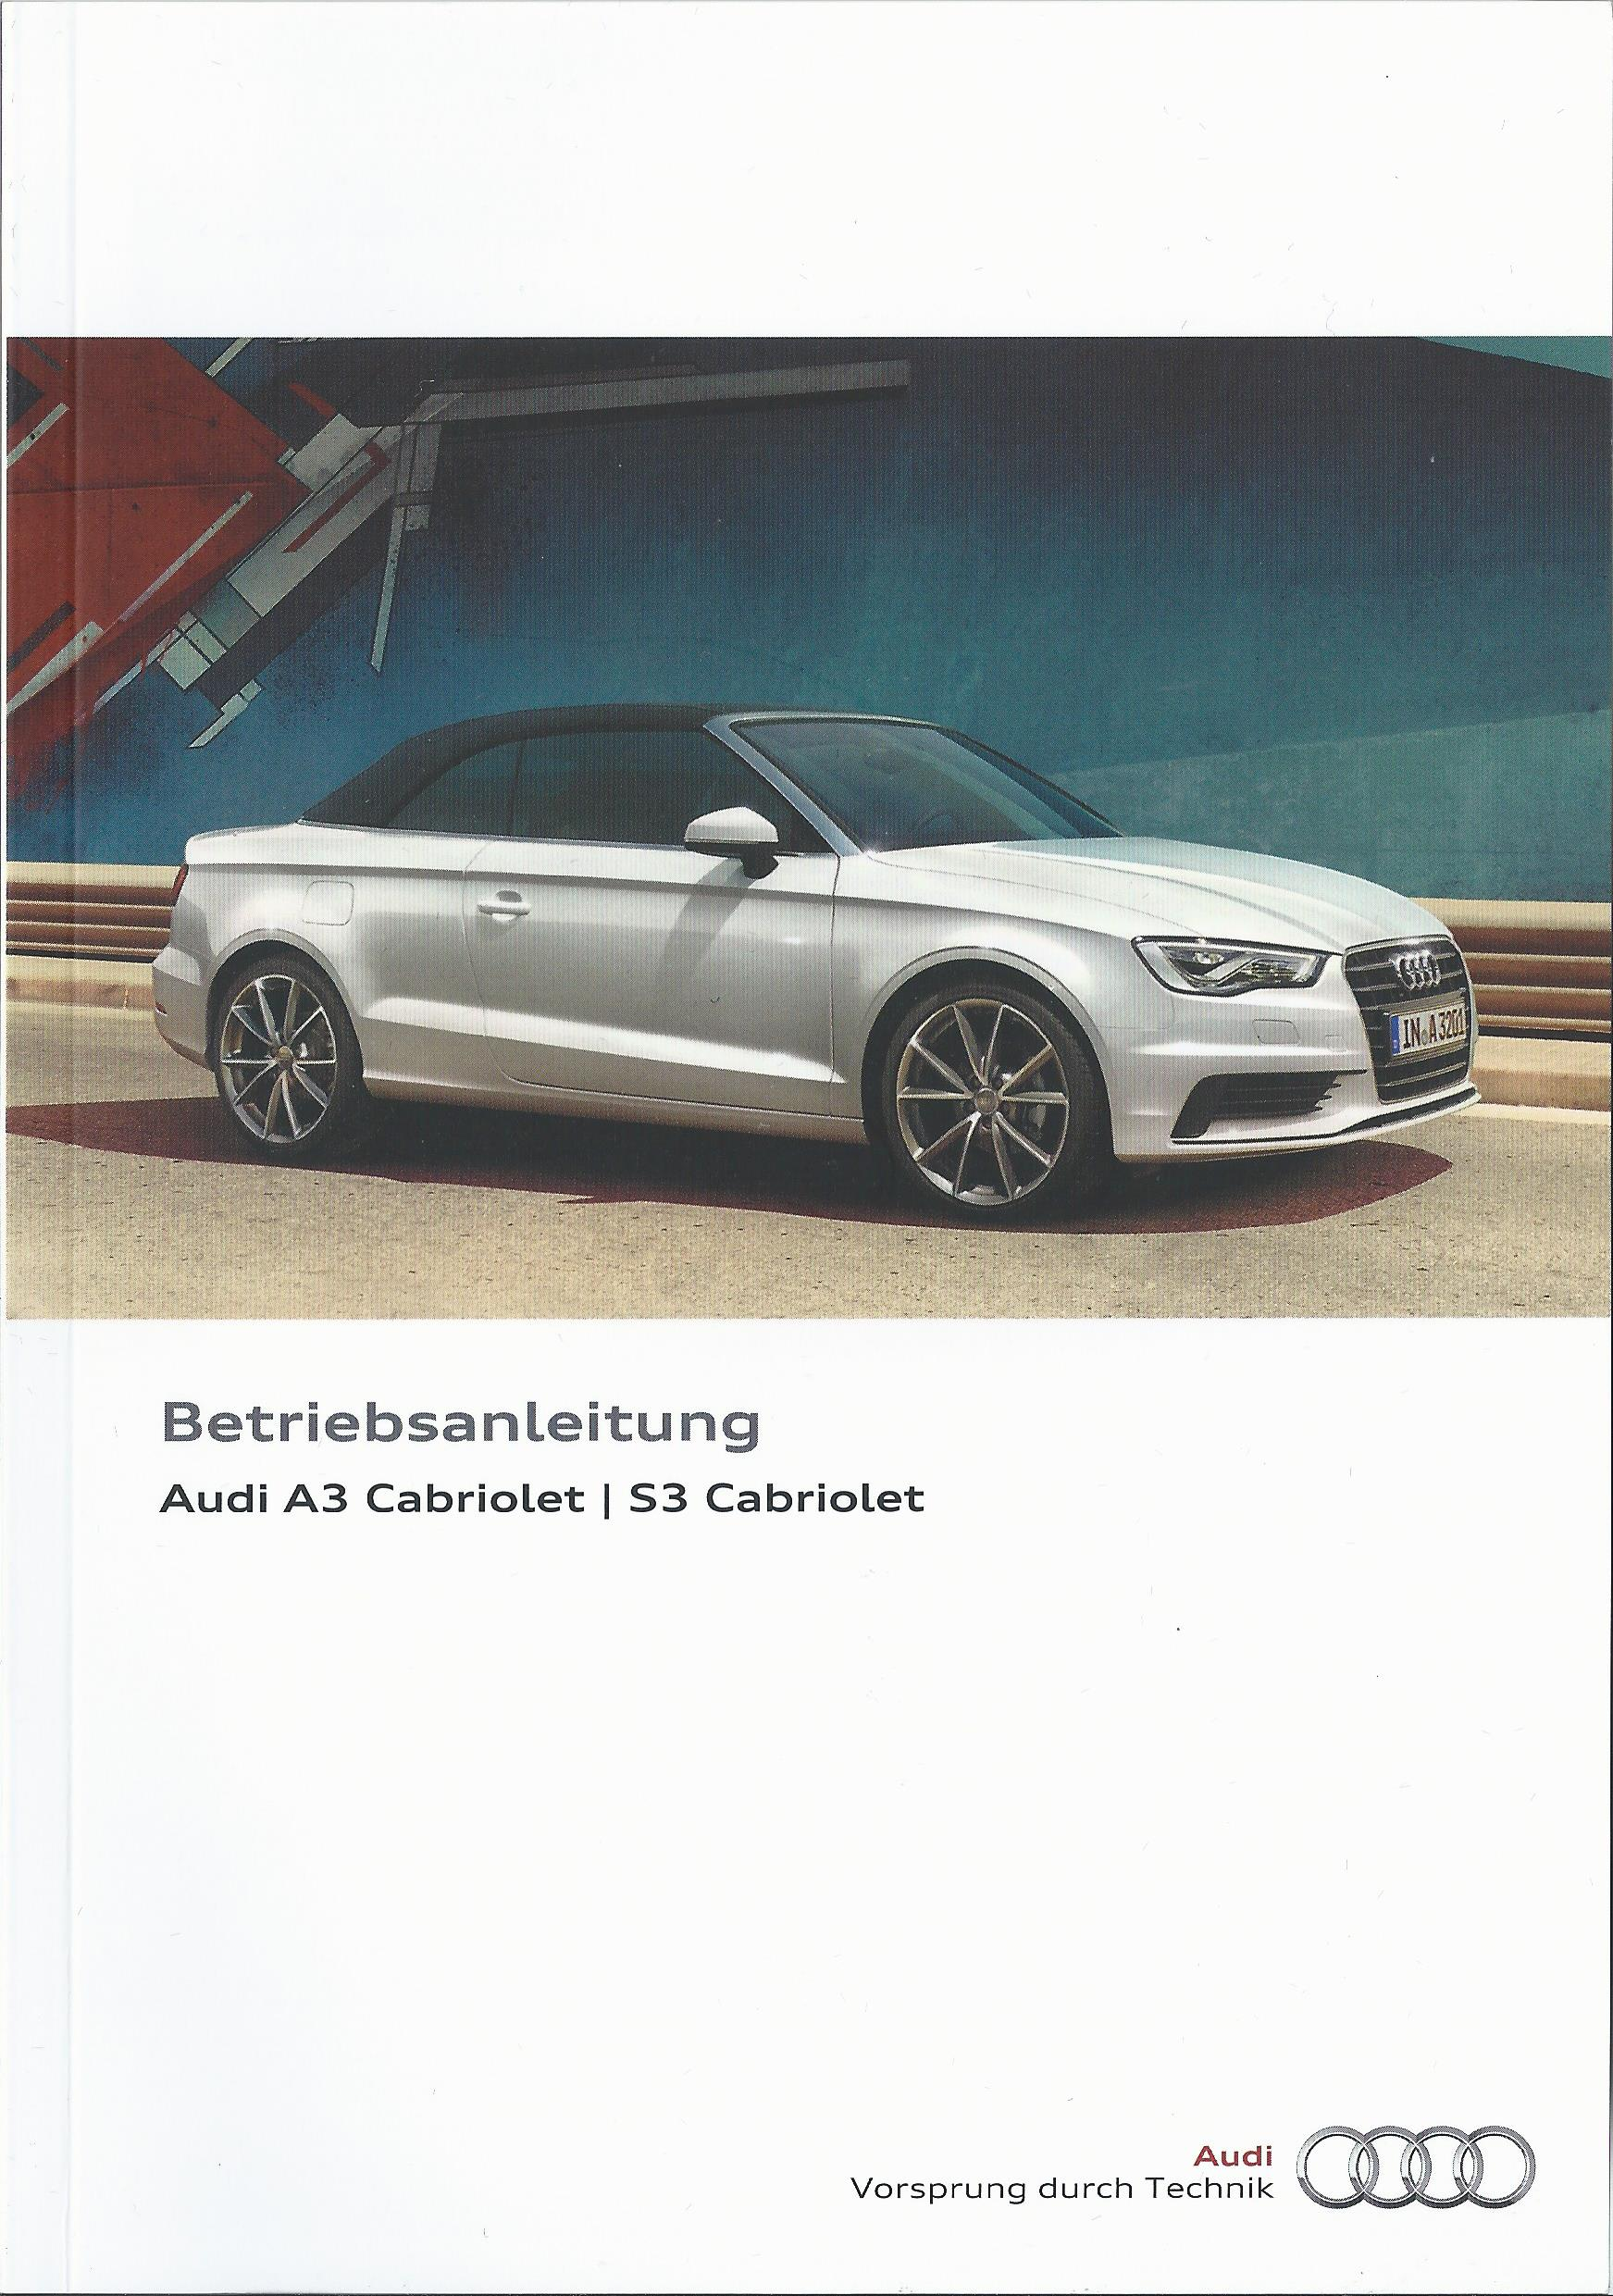 audi a3 s3 cabriolet 8v betriebsanleitung 2016 bedienungsanleitung handbuch ba ebay. Black Bedroom Furniture Sets. Home Design Ideas